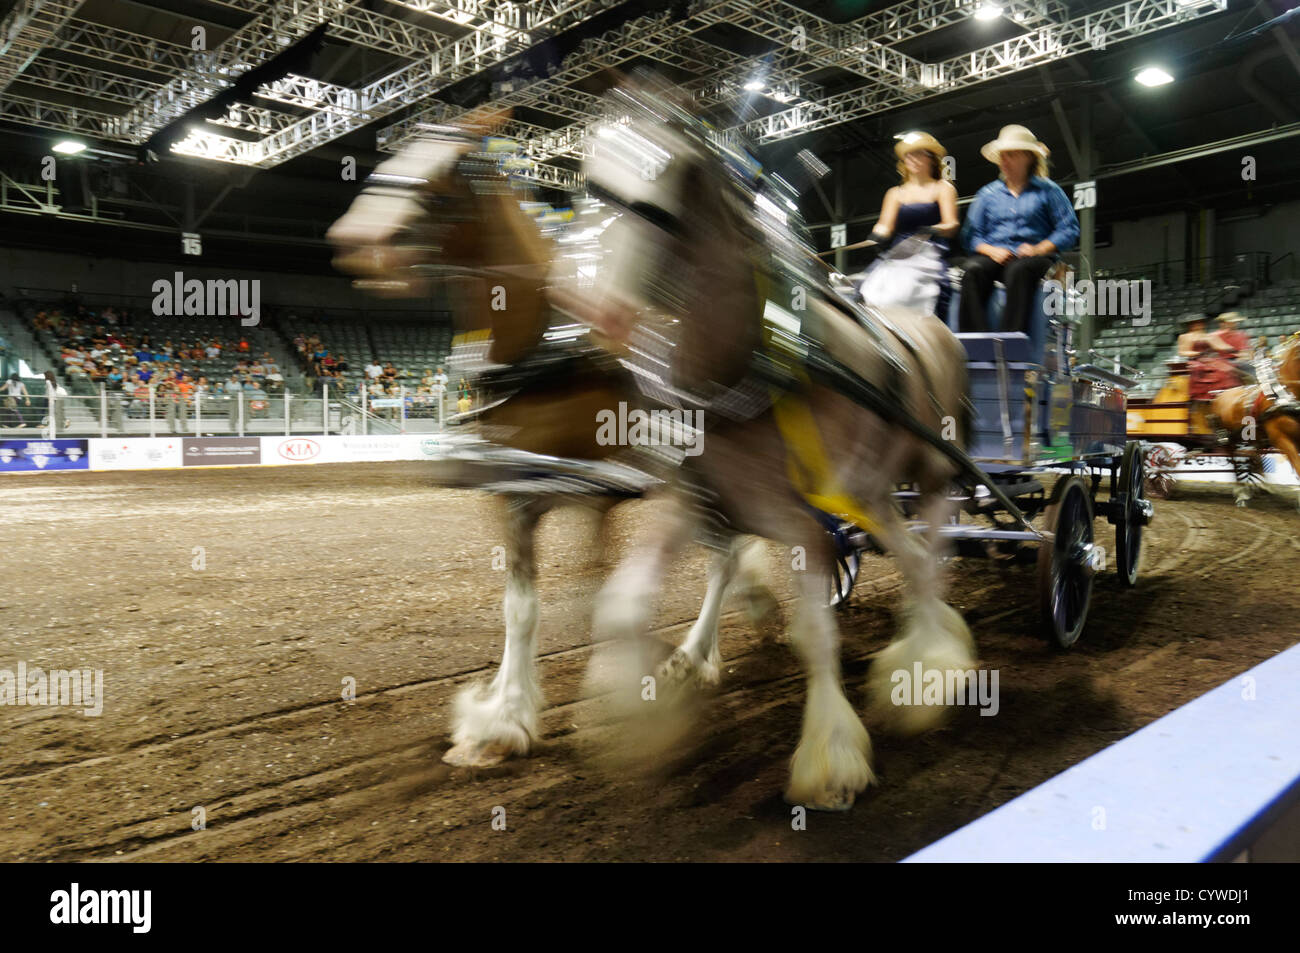 AN indoor harnessed horse and trap show in Quebec City - Stock Image